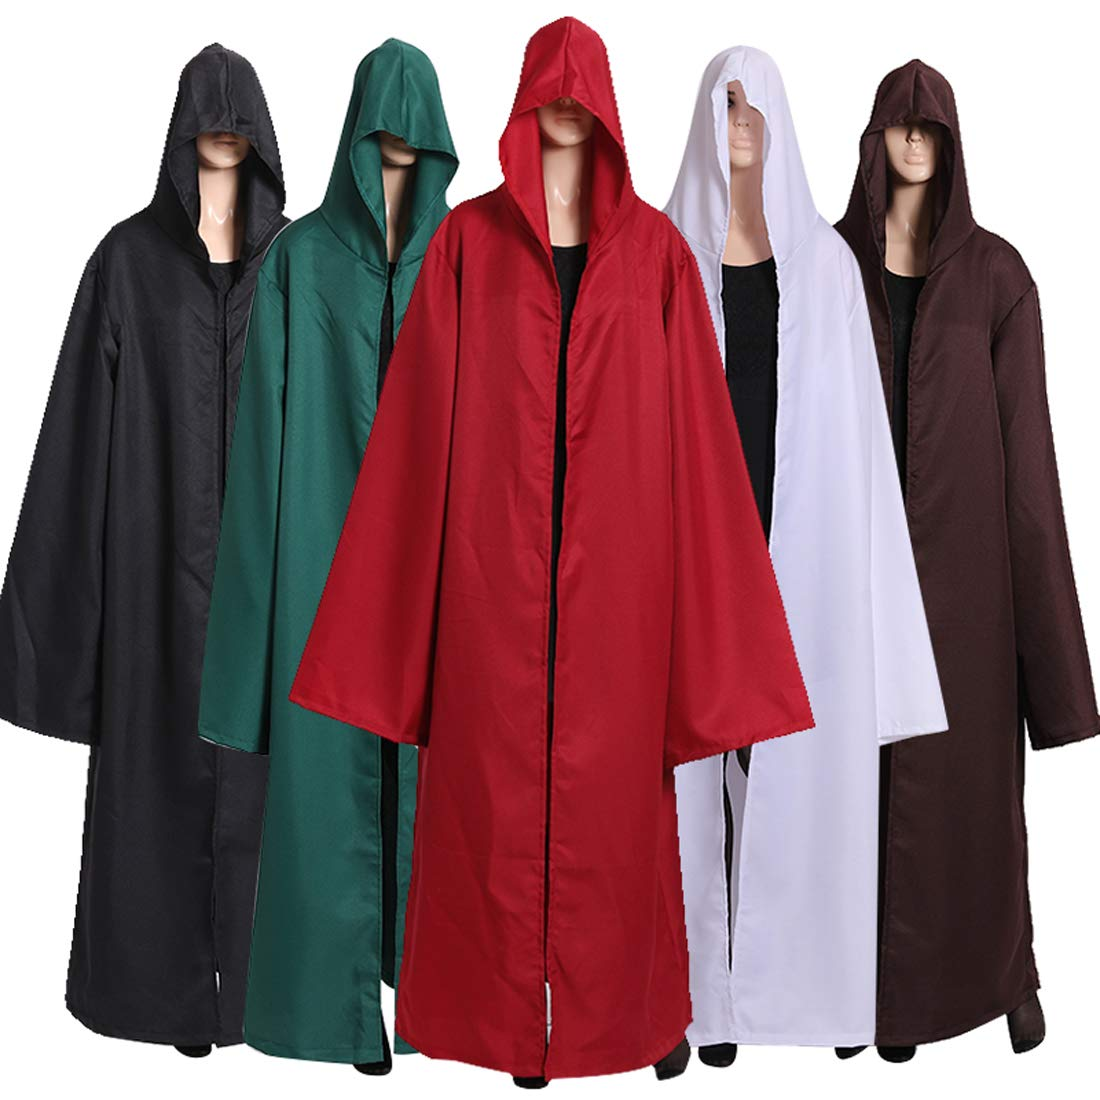 Wgior Men Tunic Hooded Robe Cloak Knight Fancy Cool Halloween Cosplay Costume (L, Red) by Wgior (Image #4)